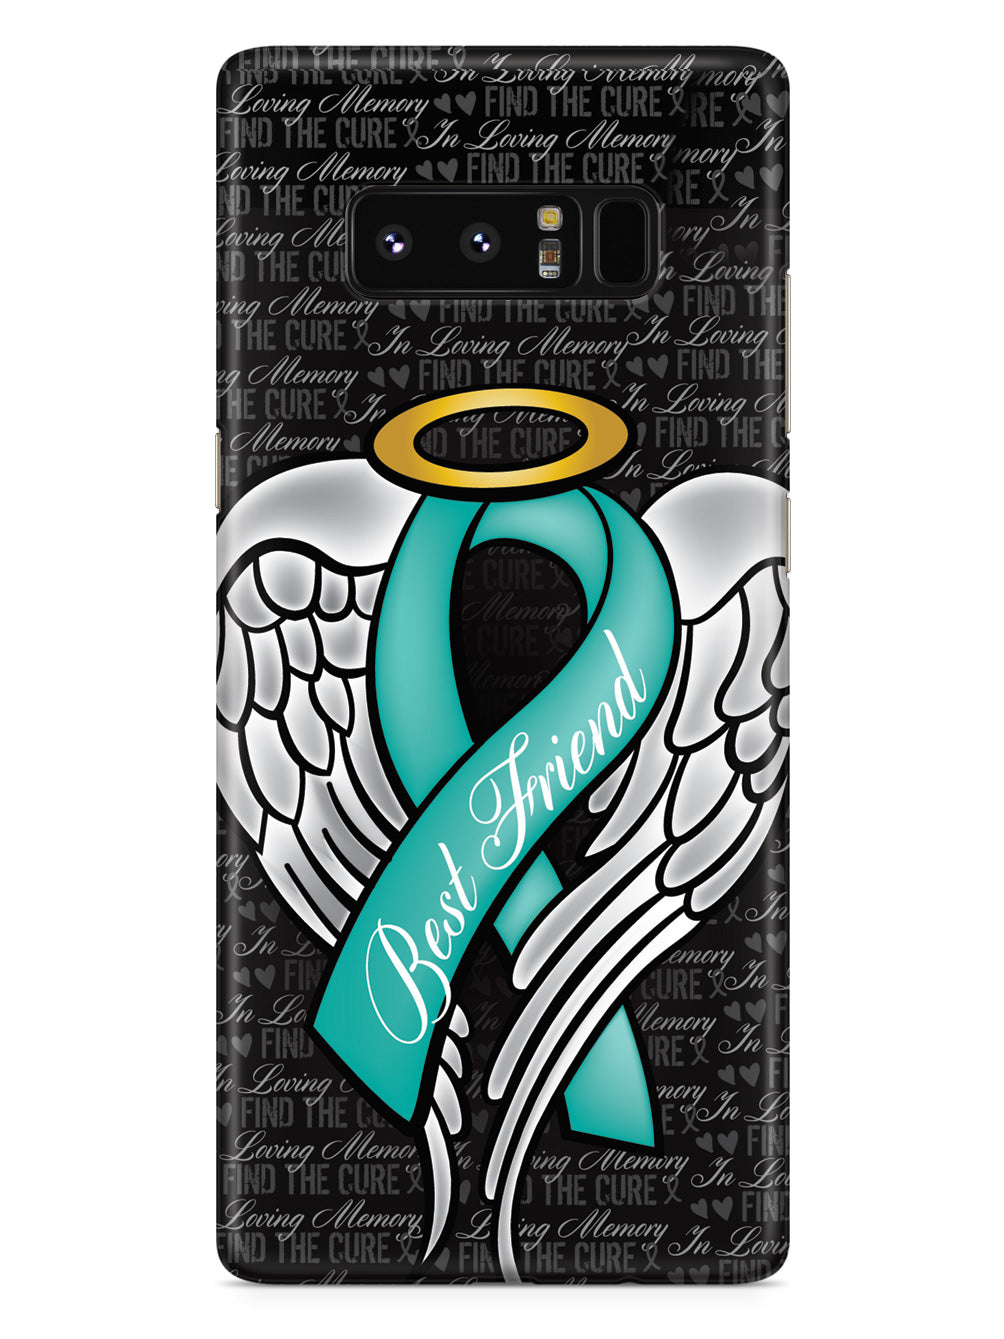 In Loving Memory of My Best Friend - Teal Ribbon Case